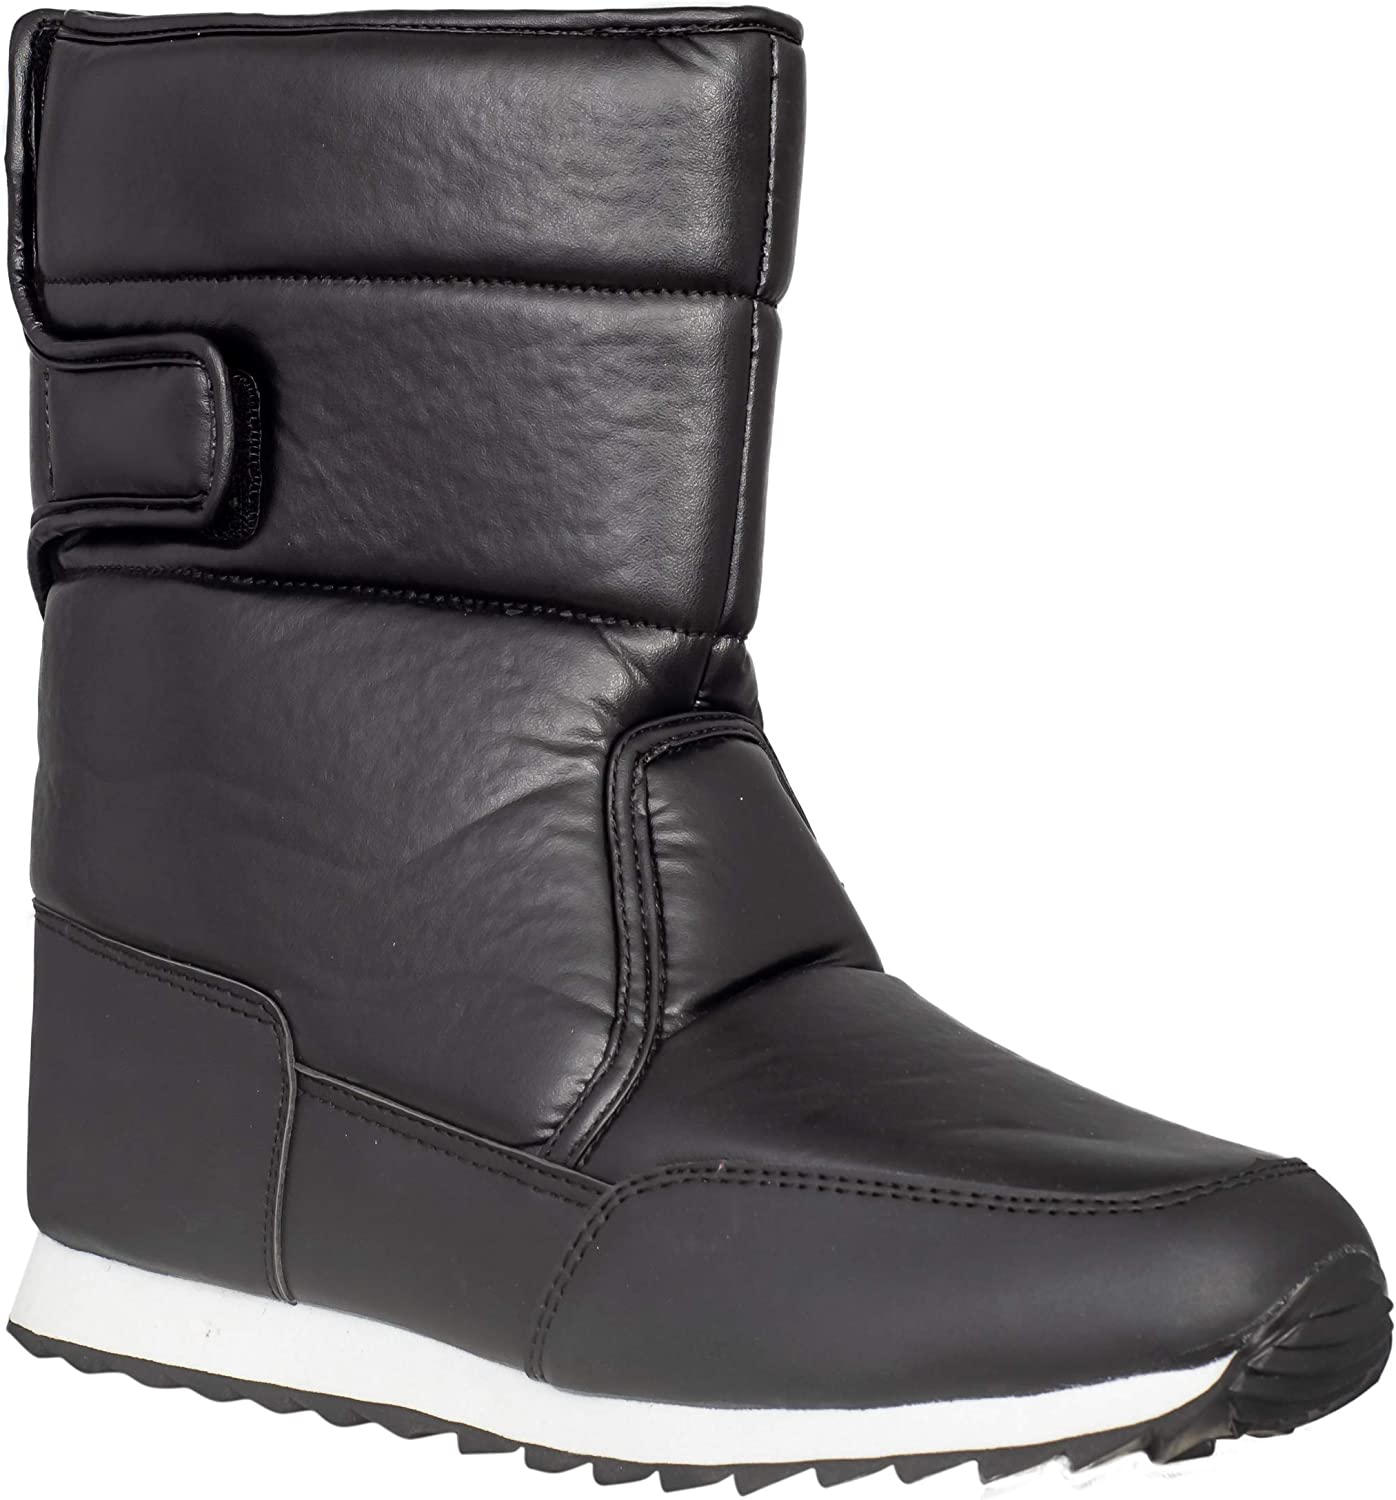 Adult Dynamite Deluxe Costume Moon Boots